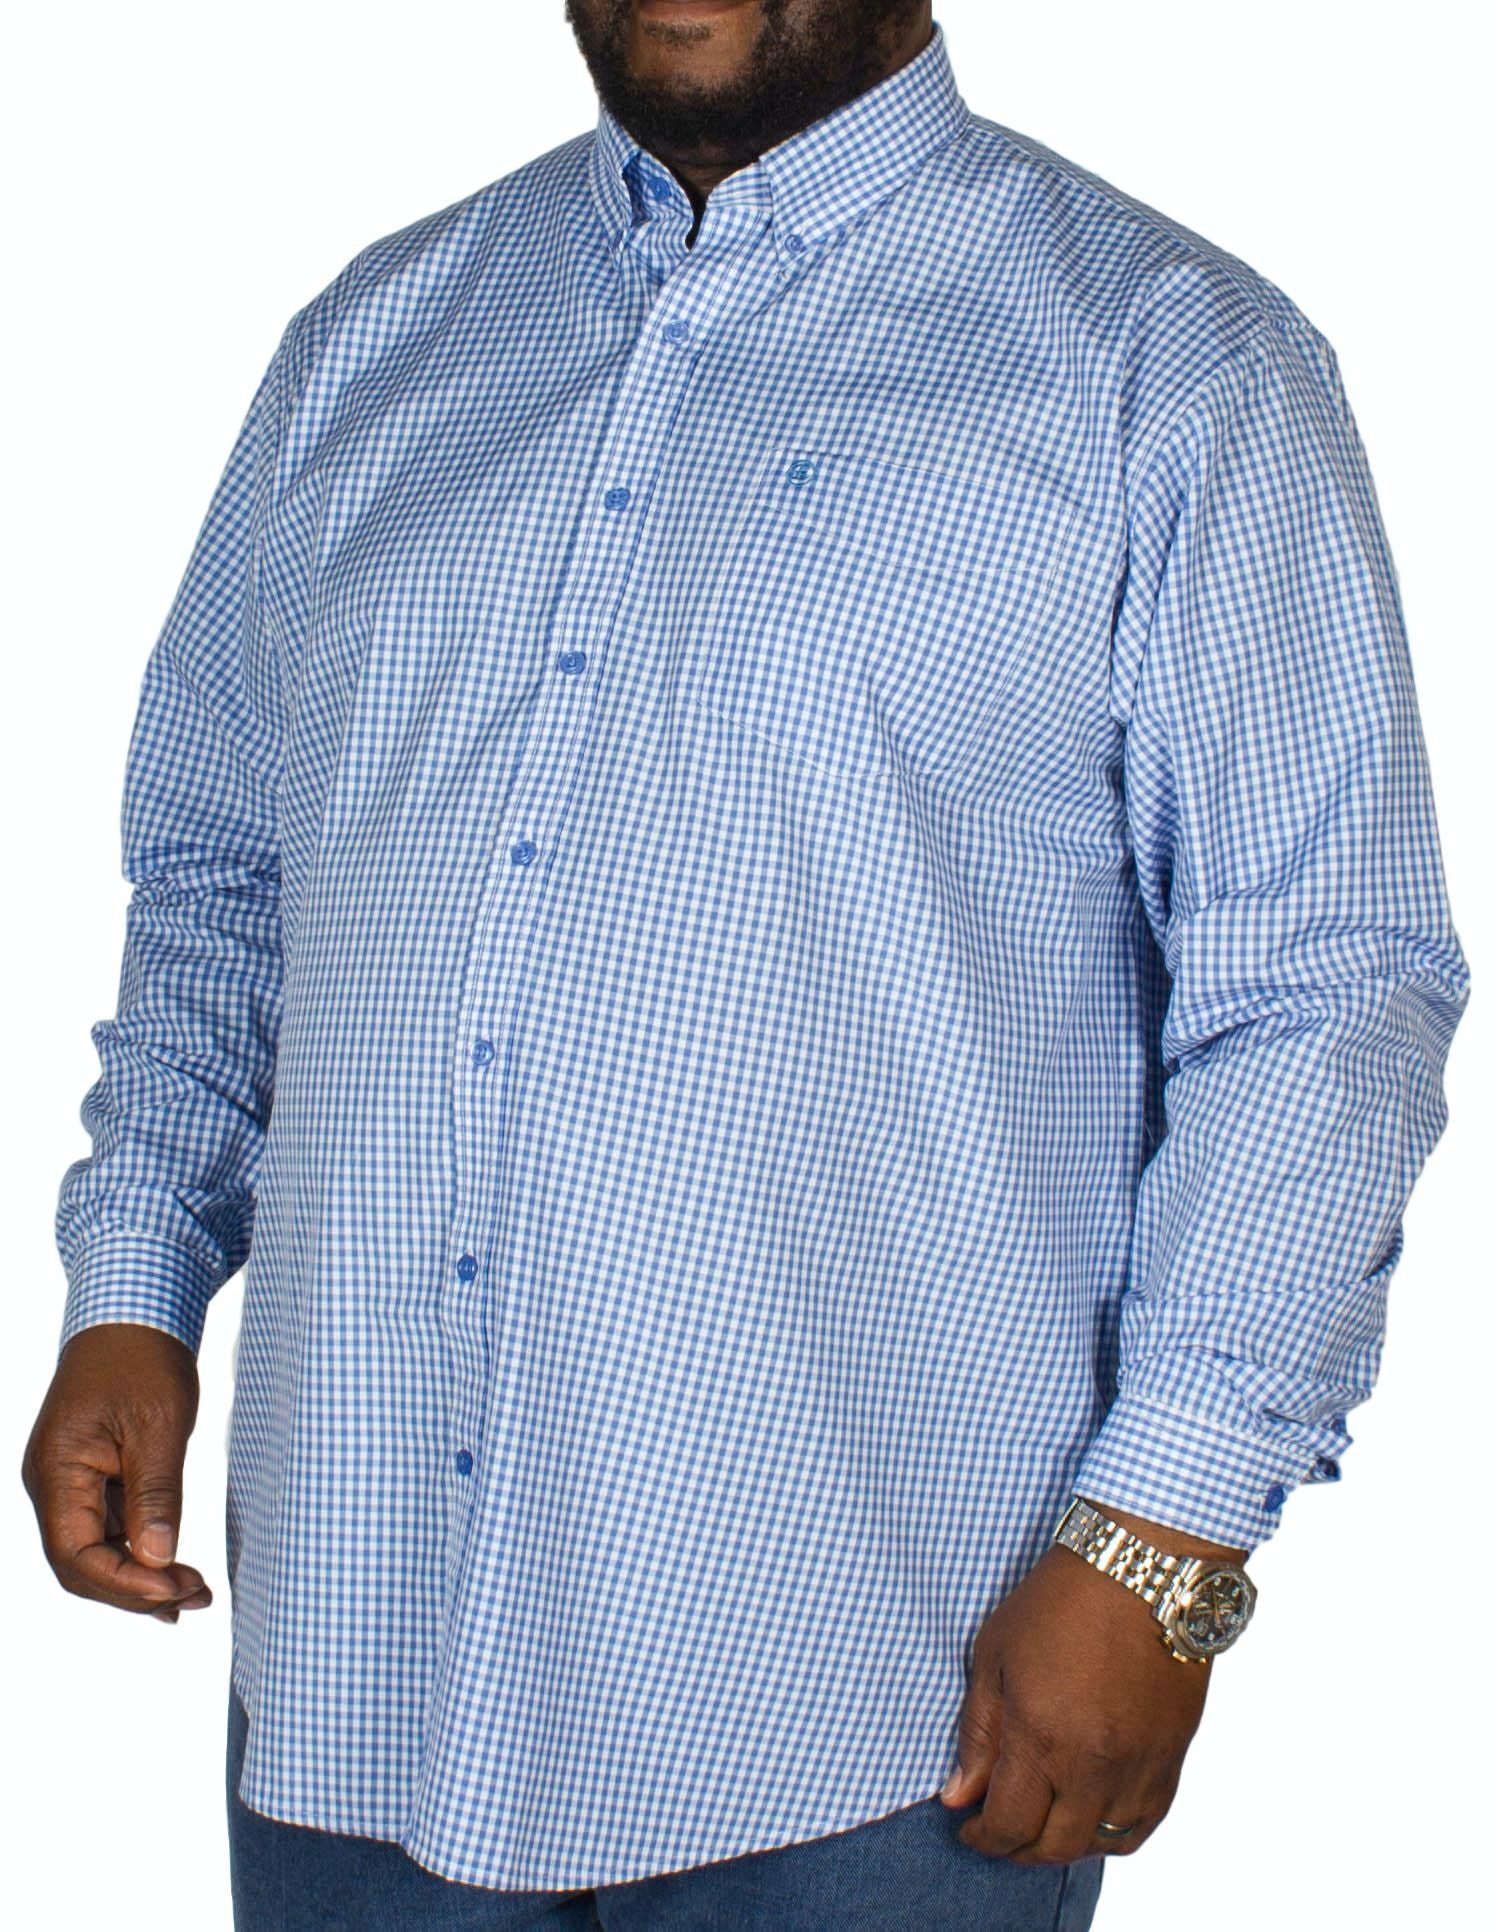 Espionage Gingham Long Sleeve Shirt Blue/White